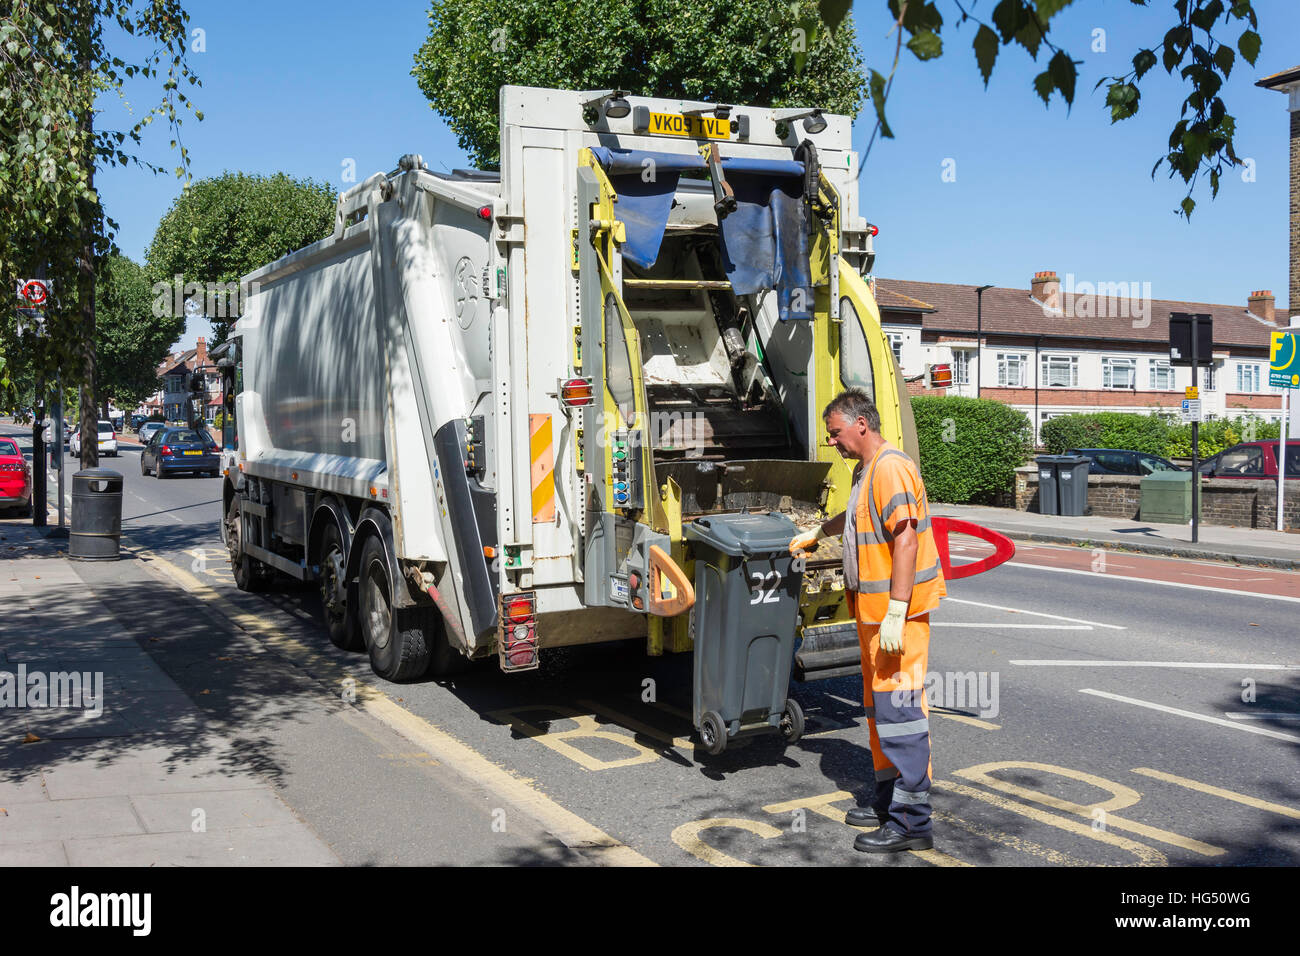 Rubbish truck collection, Boston Manor Road, Brentford, London Borough of Hounslow, Greater London, England, United - Stock Image